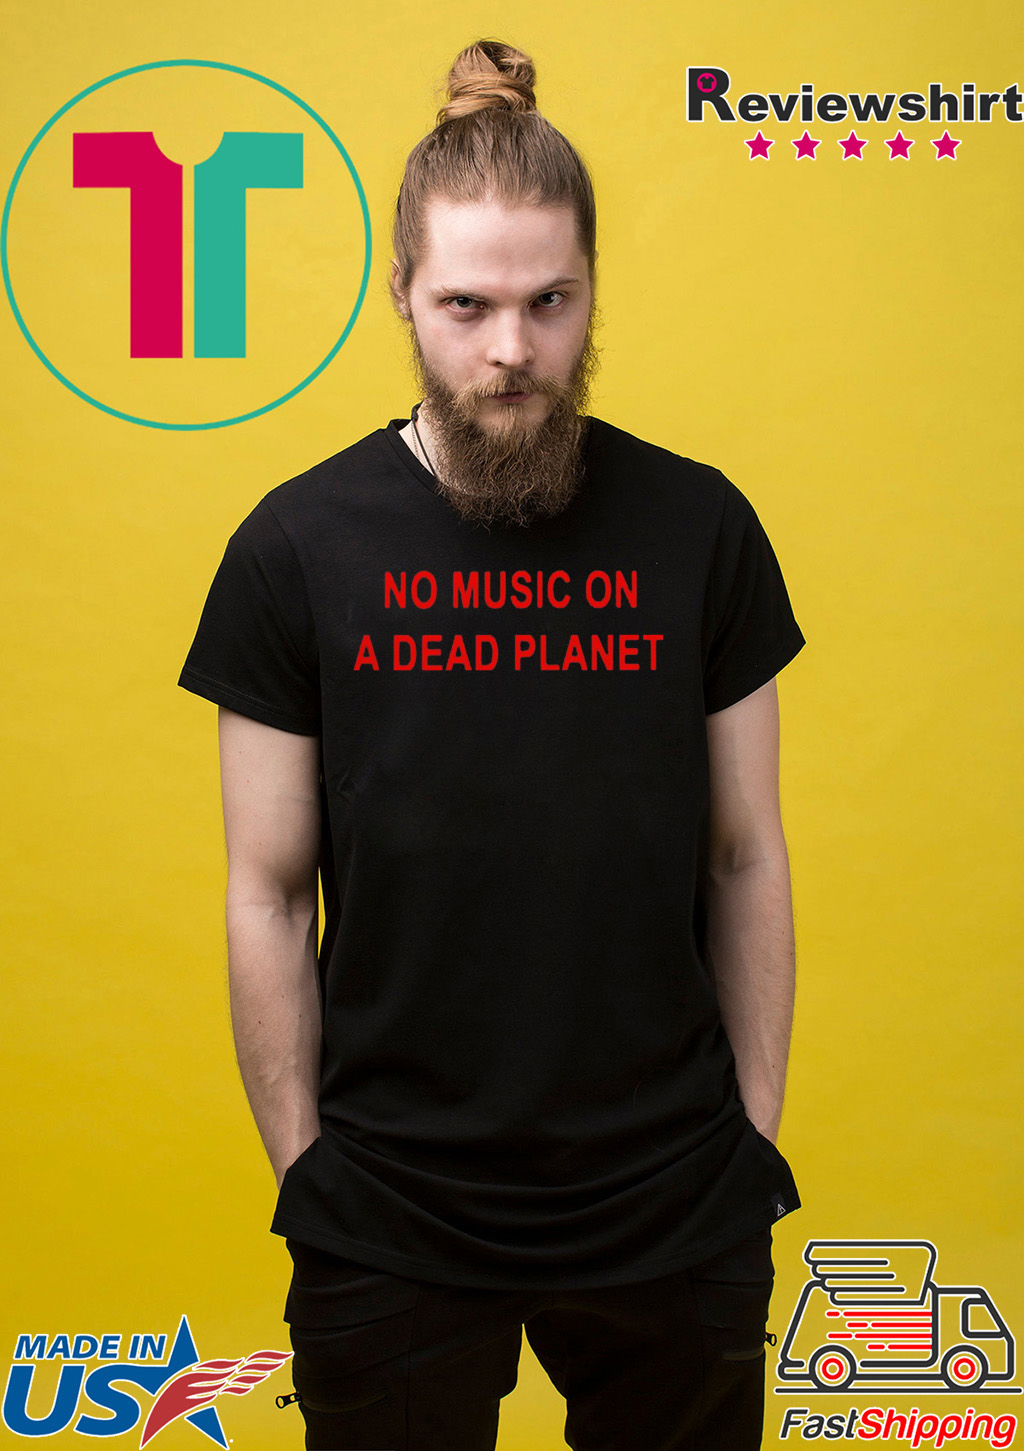 no music on a dead planet Tee Shirt